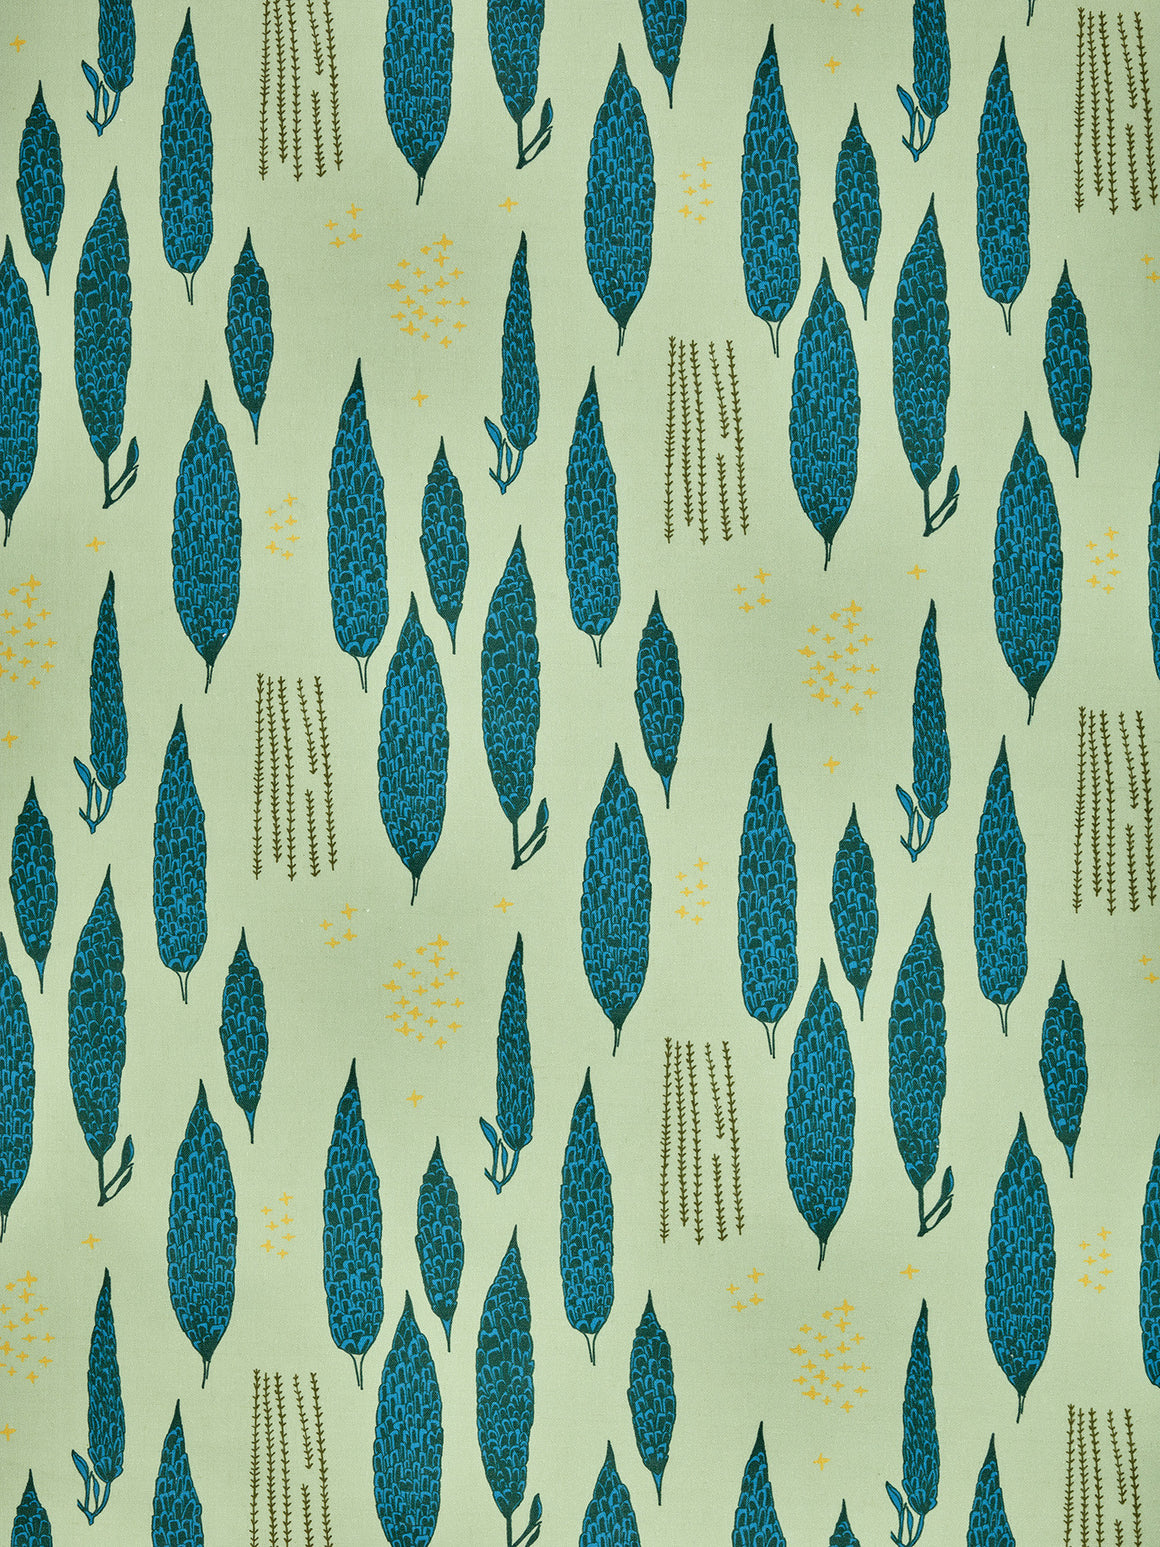 Graphic Rosemary Sprig Pattern Printed Linen Cotton Canvas Fabric in Light Eau de Nil Green and Turquoise Blue